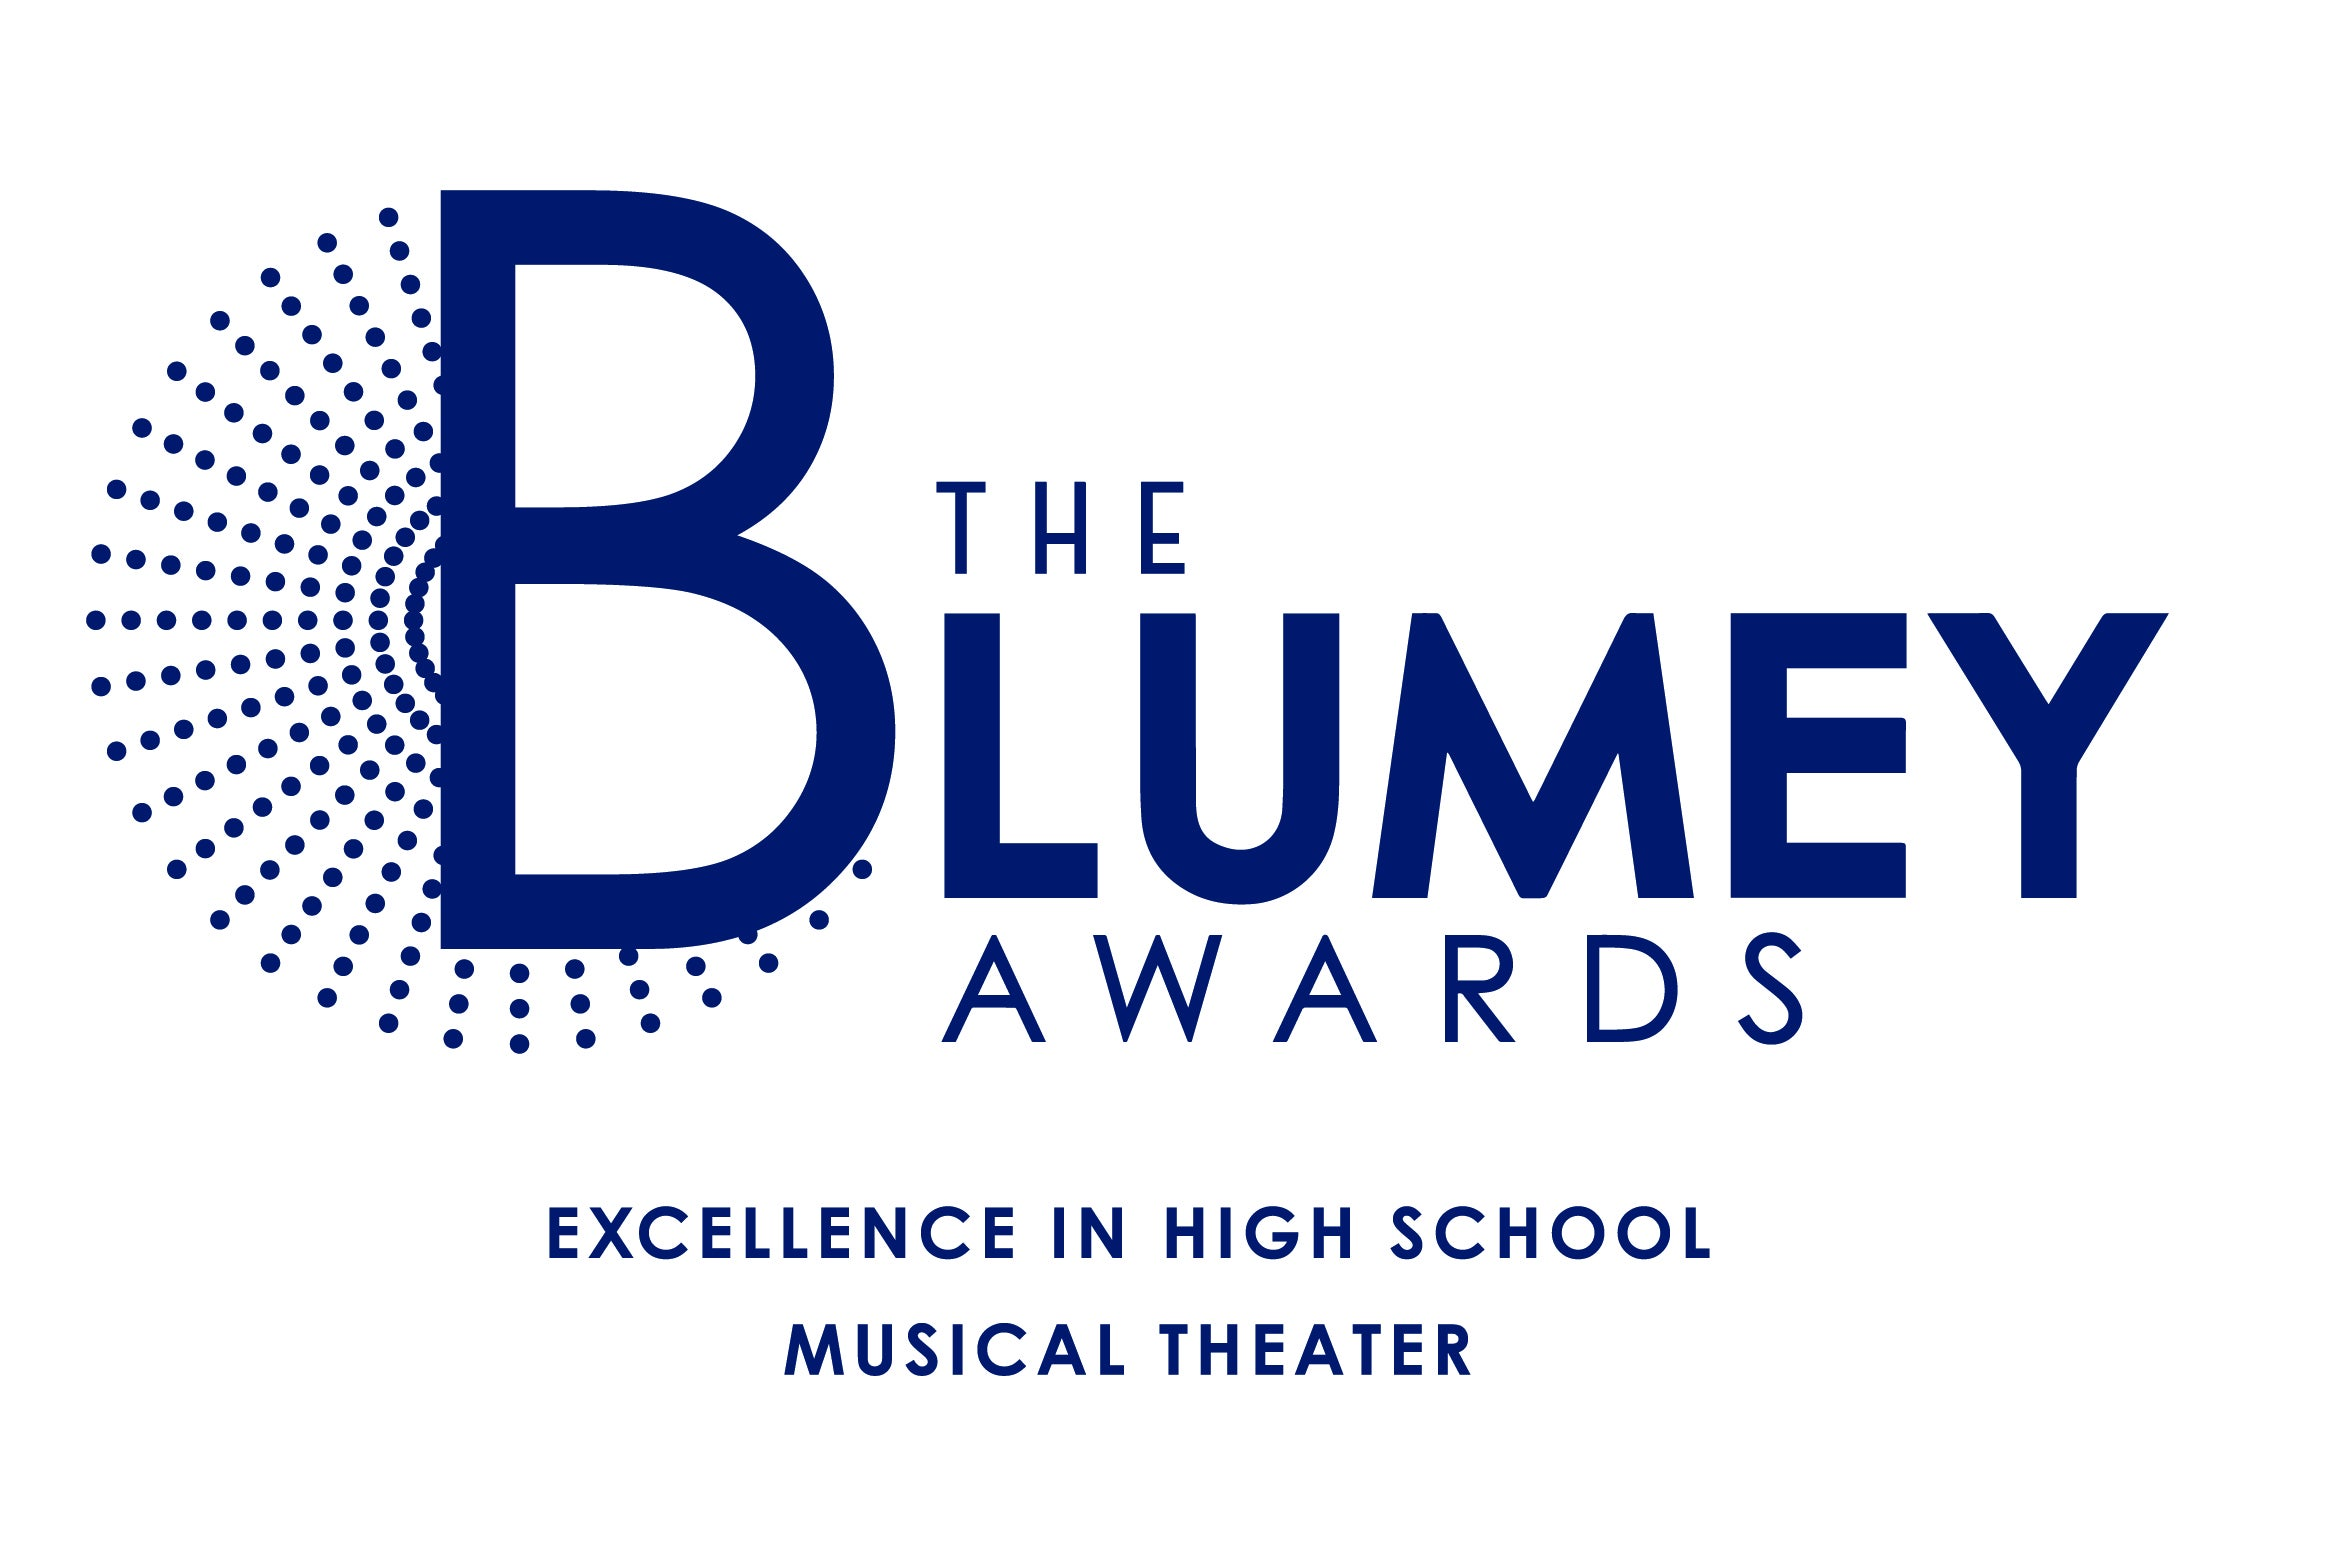 More Info for Two Former Blumey Award Nominees Return To Helm Productions at their Alma Maters